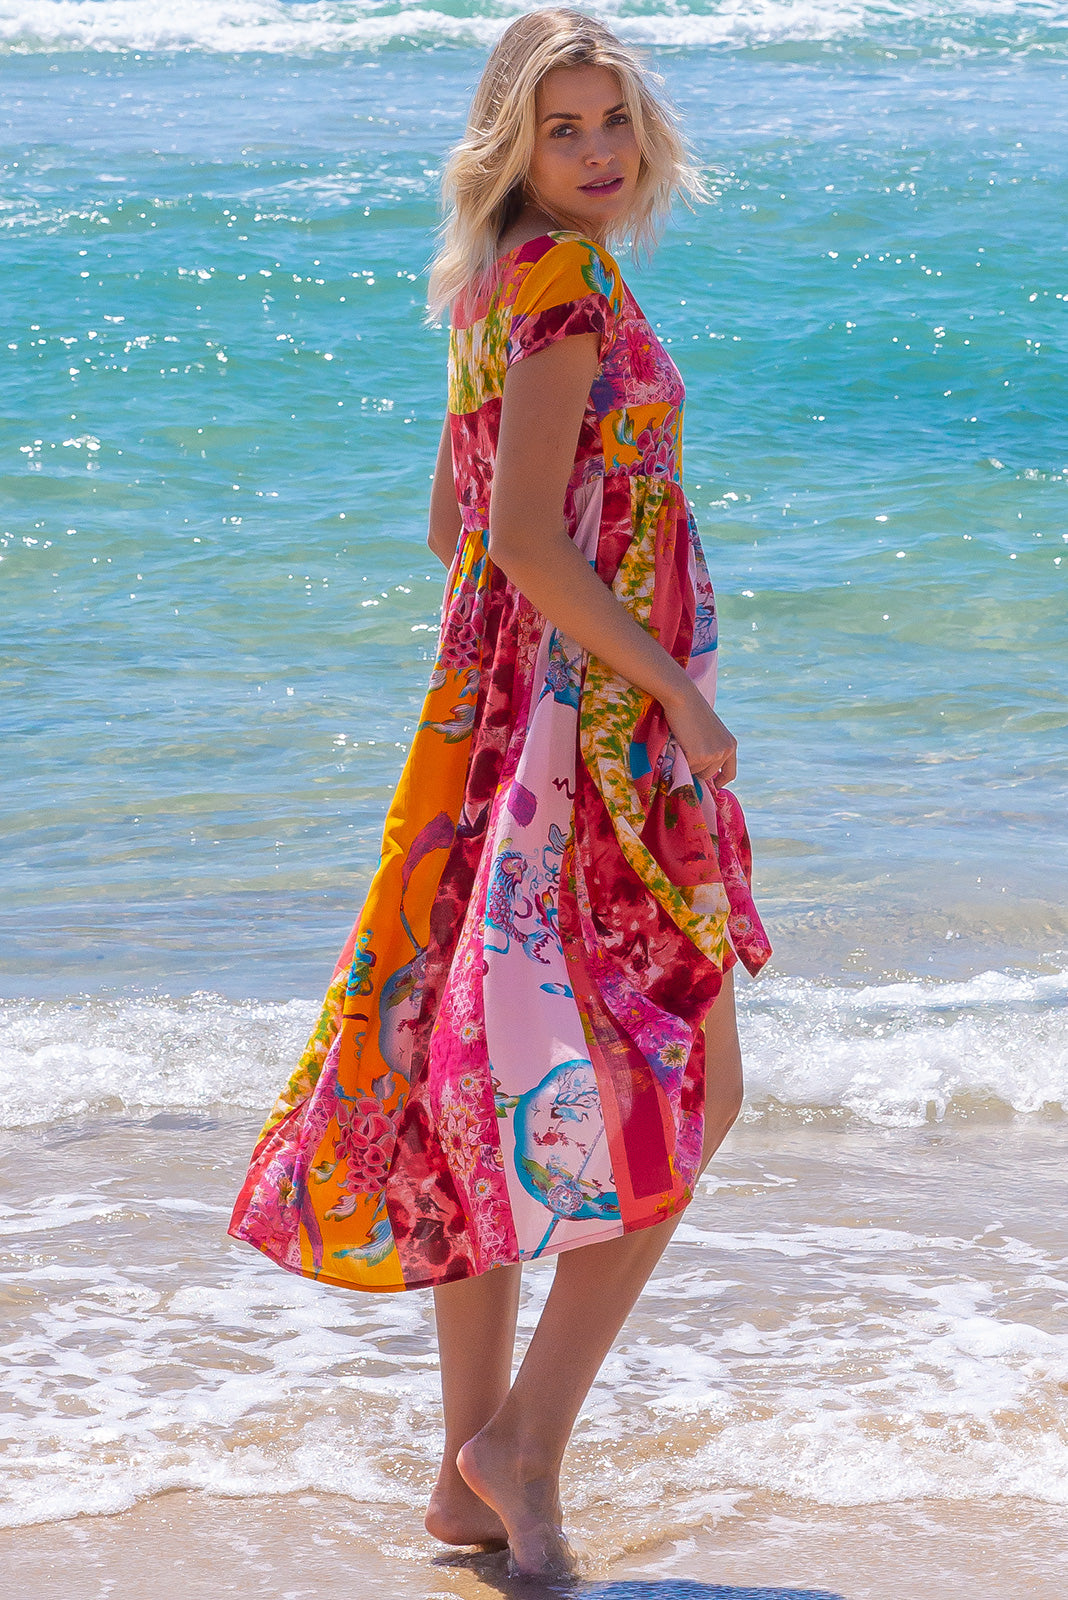 The Cocoloco Strawberry Fields Dress is a fun and bright dress featuring  side pockets, 100% cotton in bright & vibrant pink, red, peach multi-print.